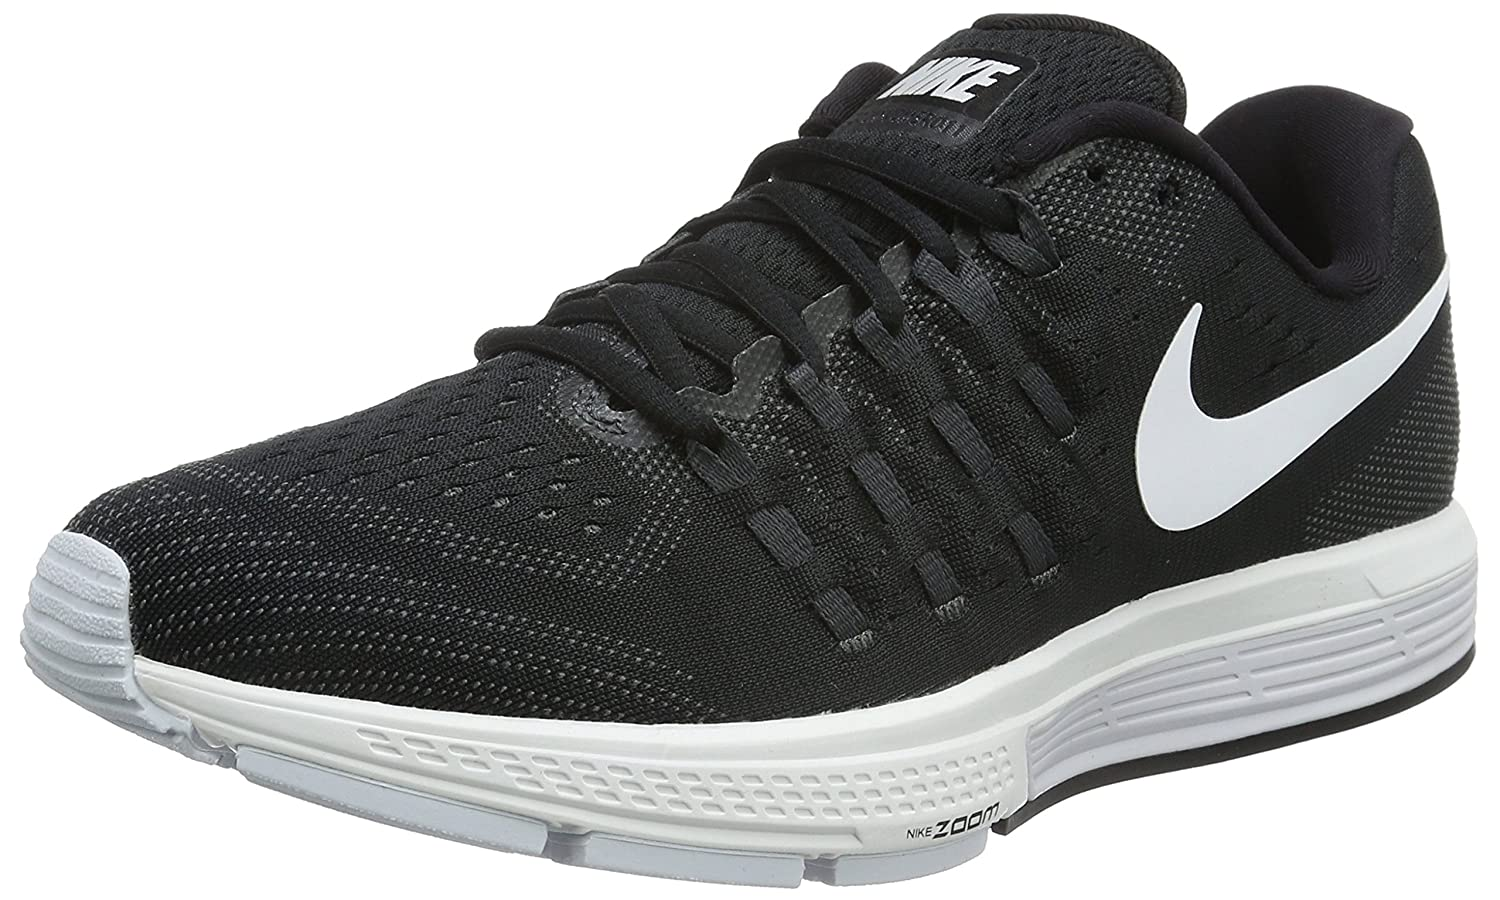 Nike Men's Air Zoom Vomero 11 Running Shoes, Black (Black/Anthracite/Dark  Grey/White), 6 UK/39 EU: Amazon.co.uk: Shoes & Bags